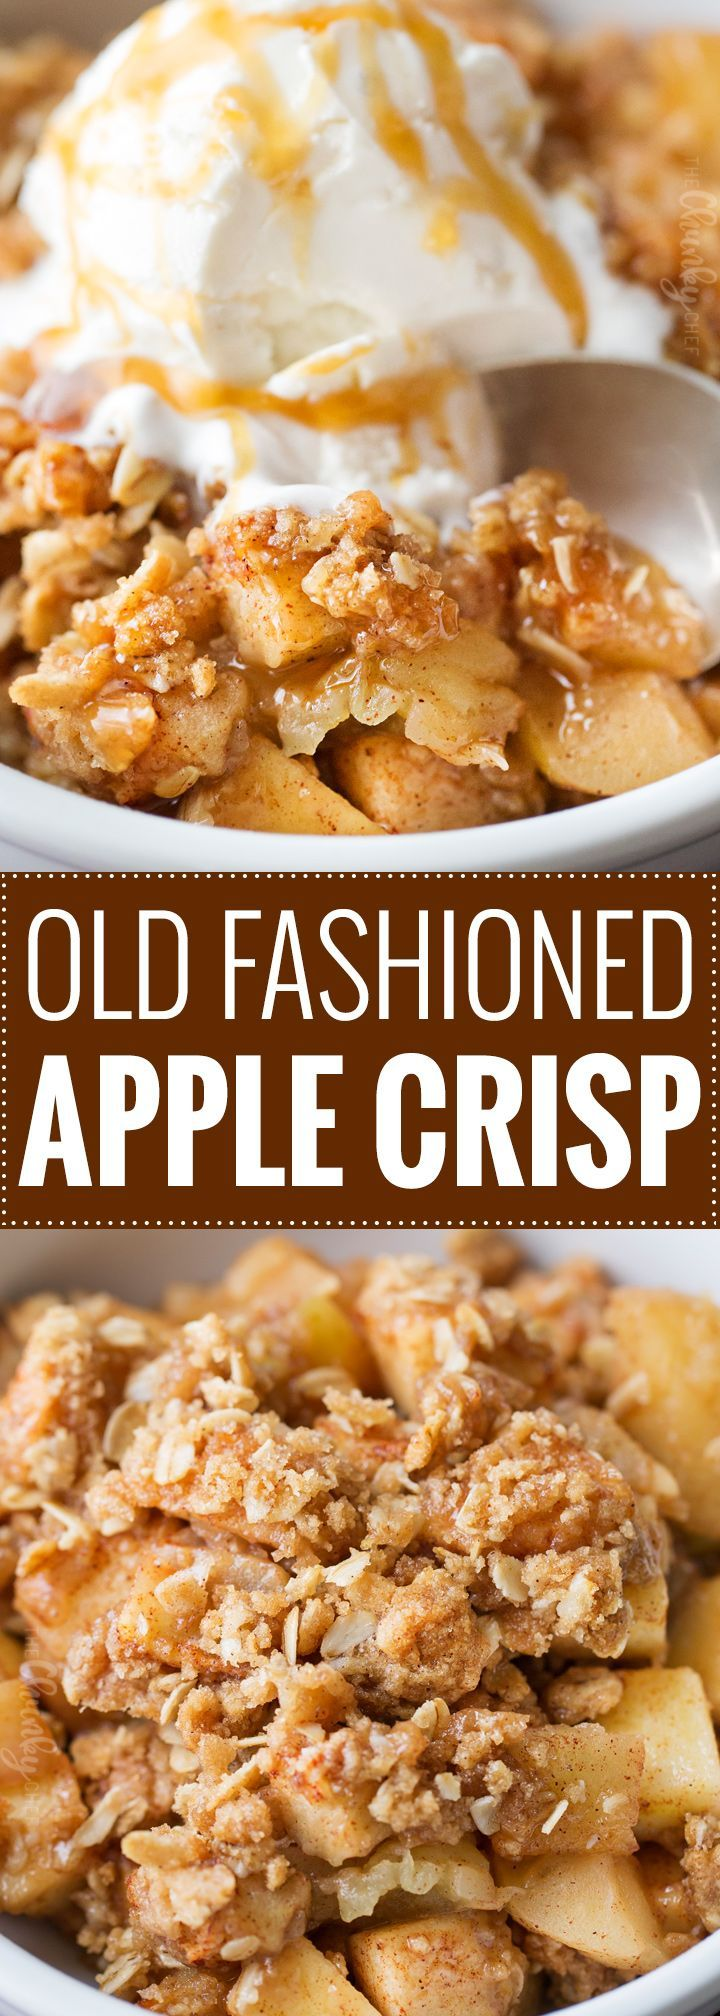 Old Fashioned Easy Apple Crisp | Chopped apples, cinnamon, brown sugar, and the best crispy oat topping, baked into the ultimate Fall dessert! Top with a scoop of ice cream and salted caramel for the perfect treat! (holiday foods dinners)